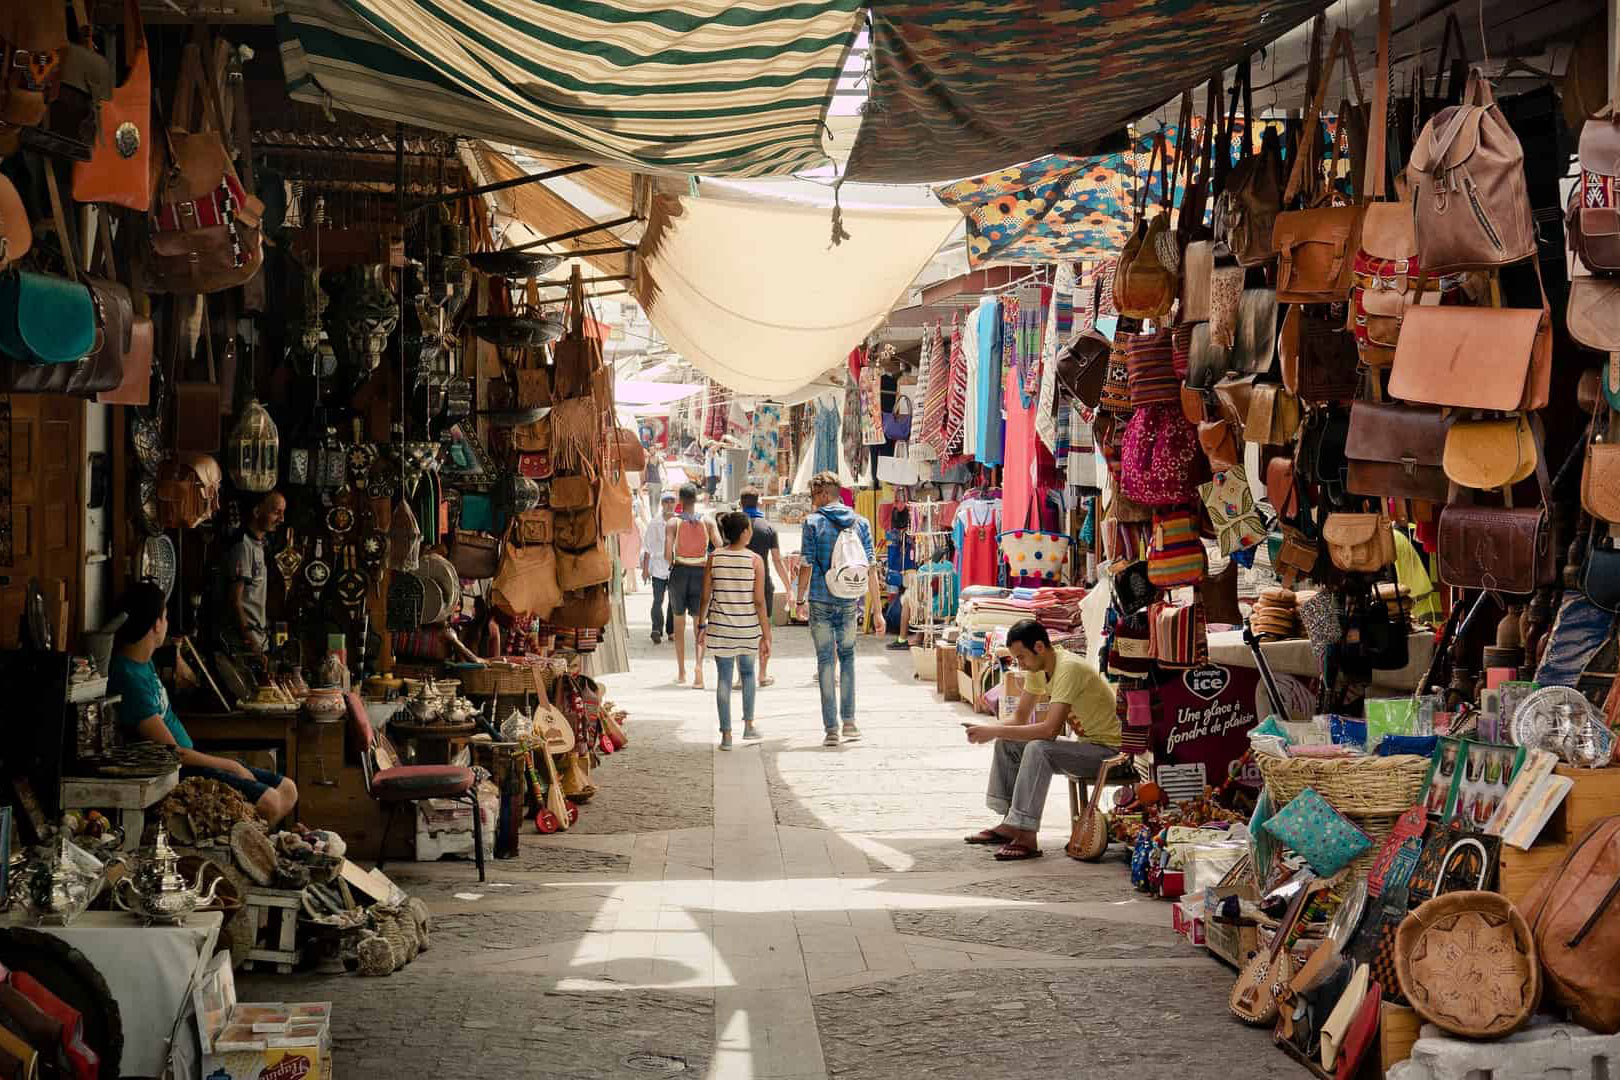 people walking through a middle eastern market